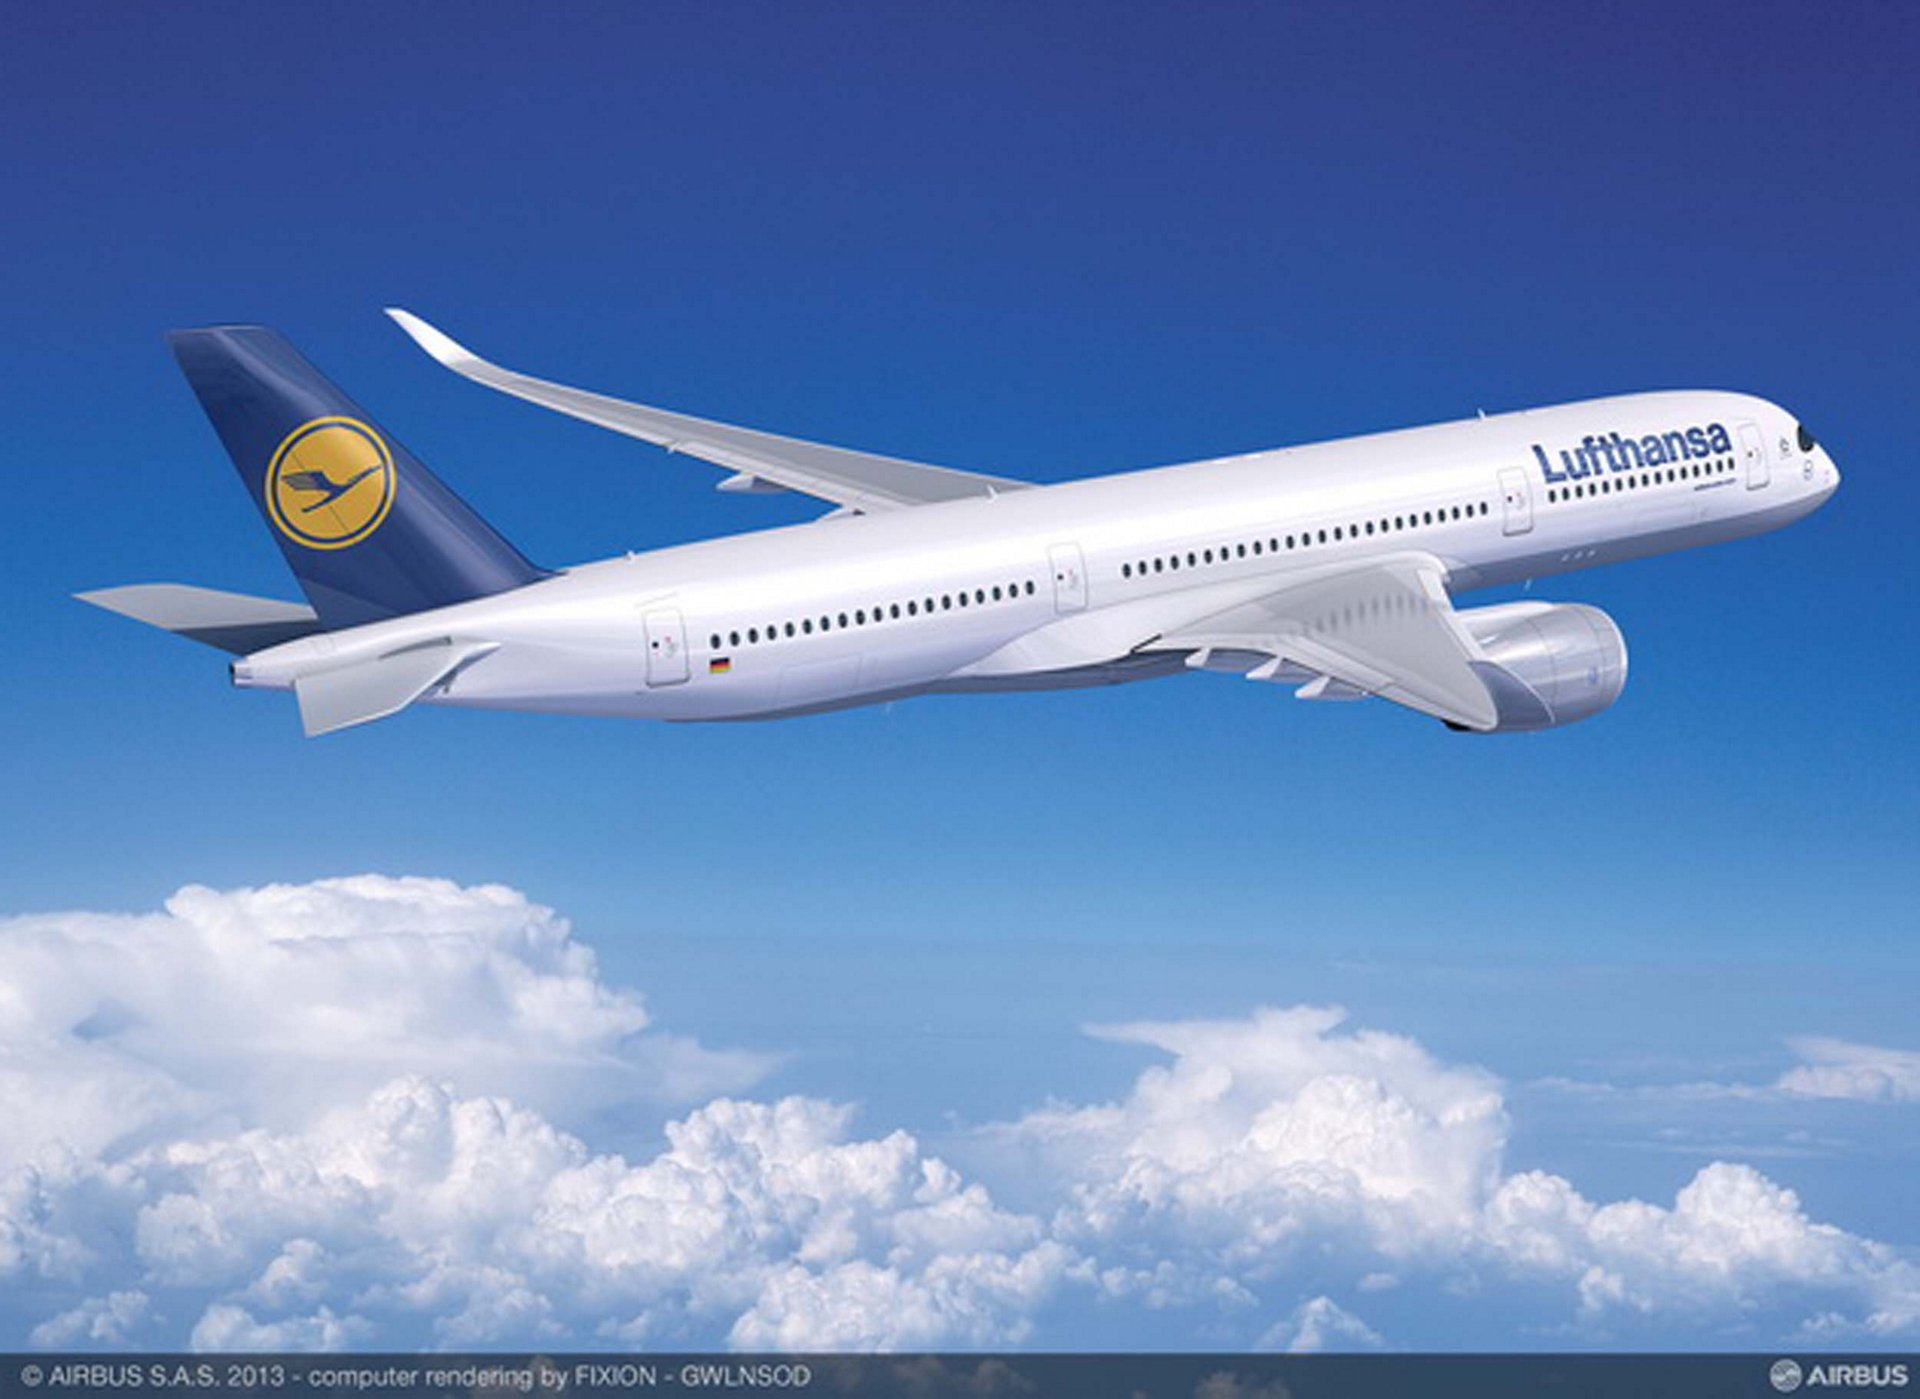 Airbus' biggest airline customer and operator, Lufthansa, has committed to acquire up to 55 A350-900 jetliners – covering 25 firm orders and 30 options